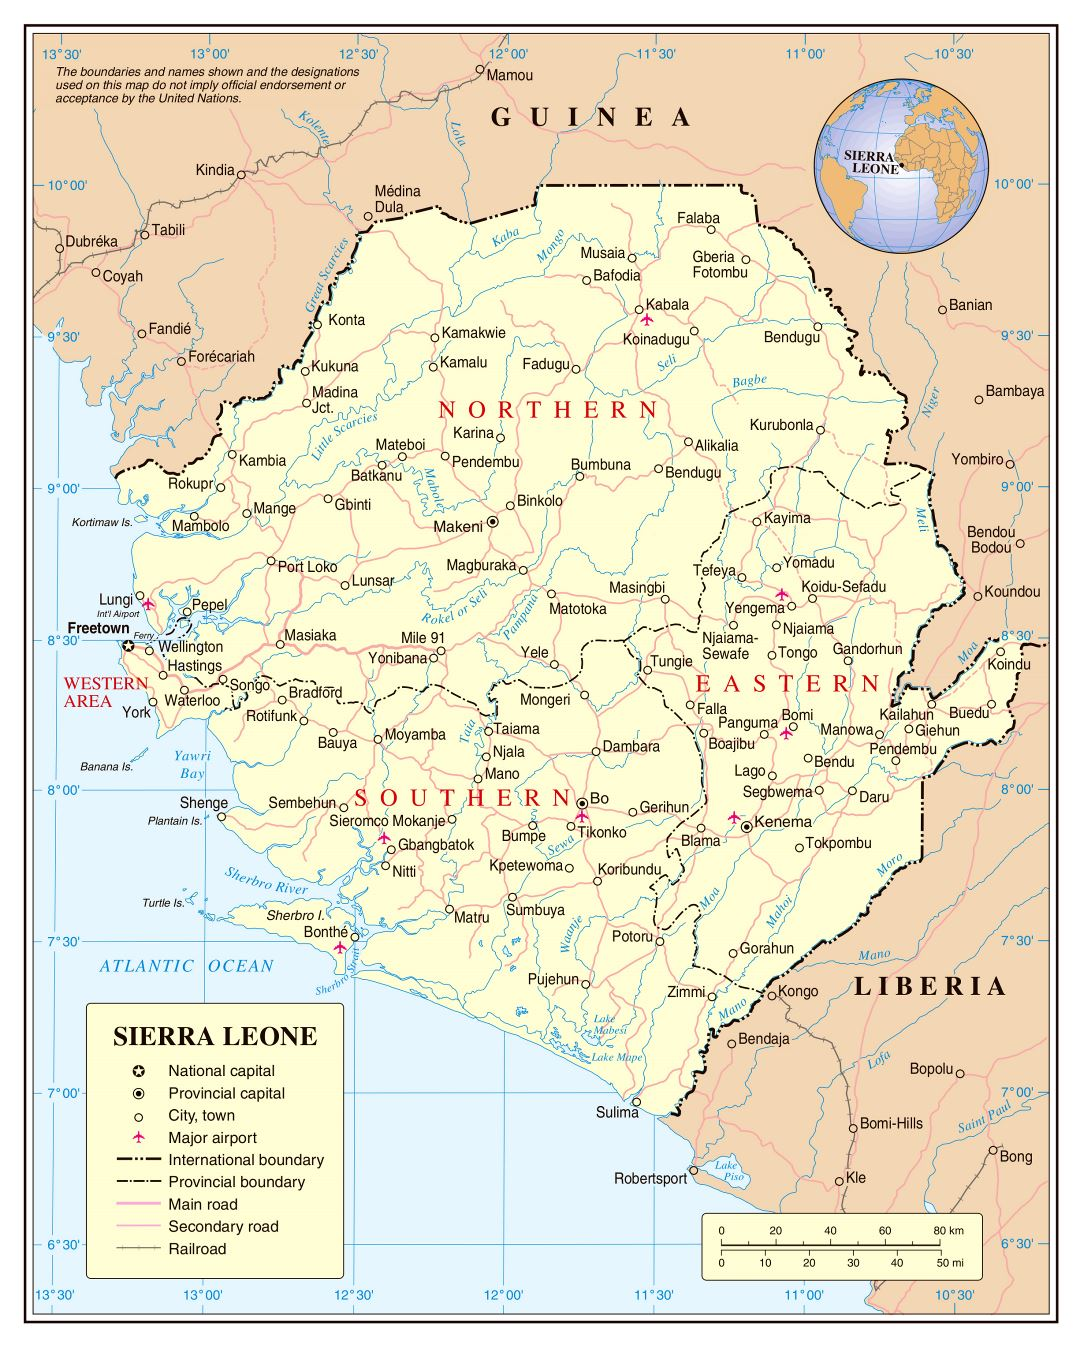 Large detailed political and administrative map of Sierra Leone with roads, railroads, cities and airports